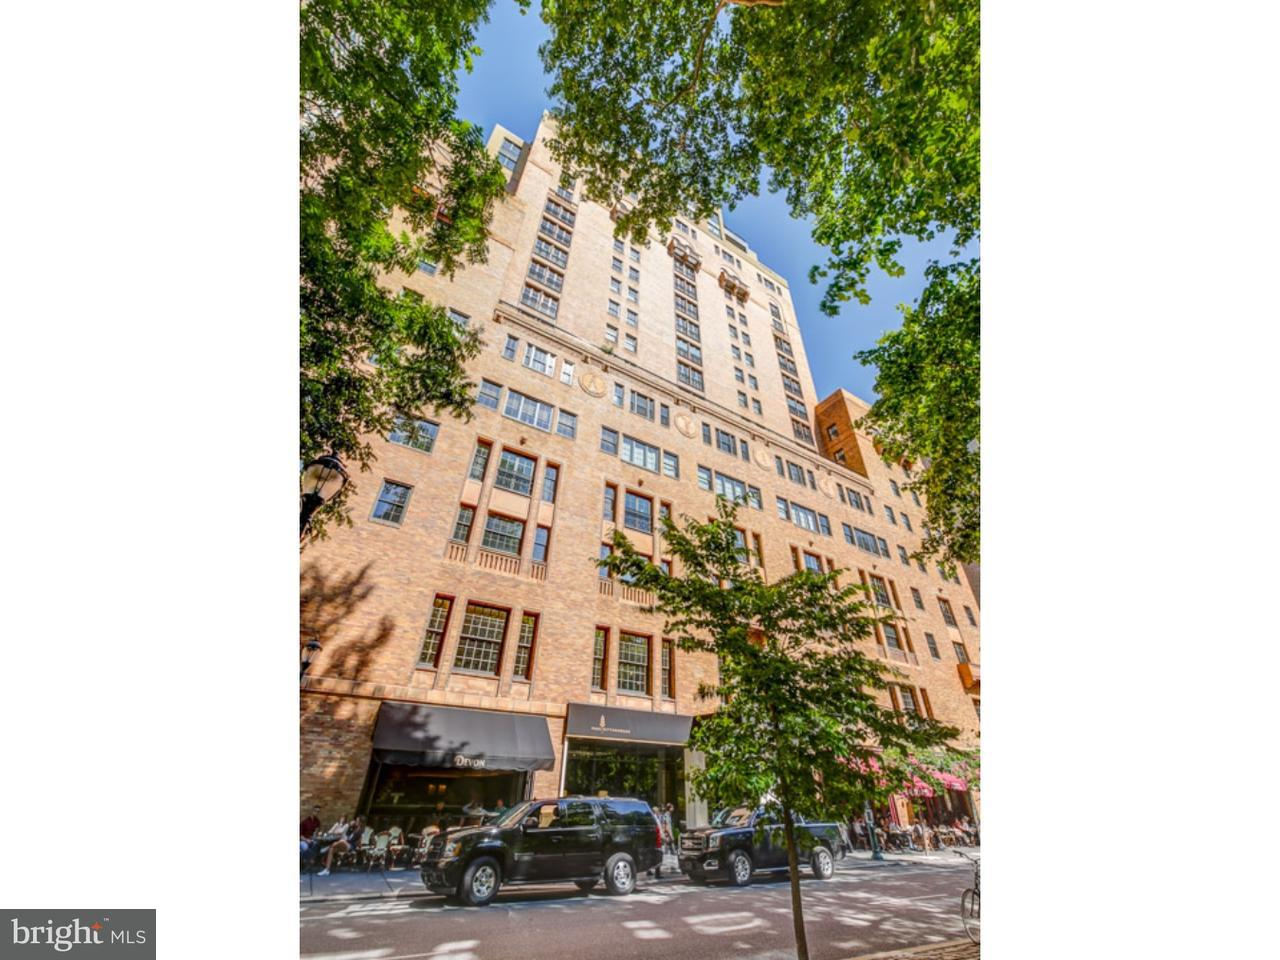 Additional photo for property listing at 219 S 18TH ST #502  费城, 宾夕法尼亚州 19103 美国